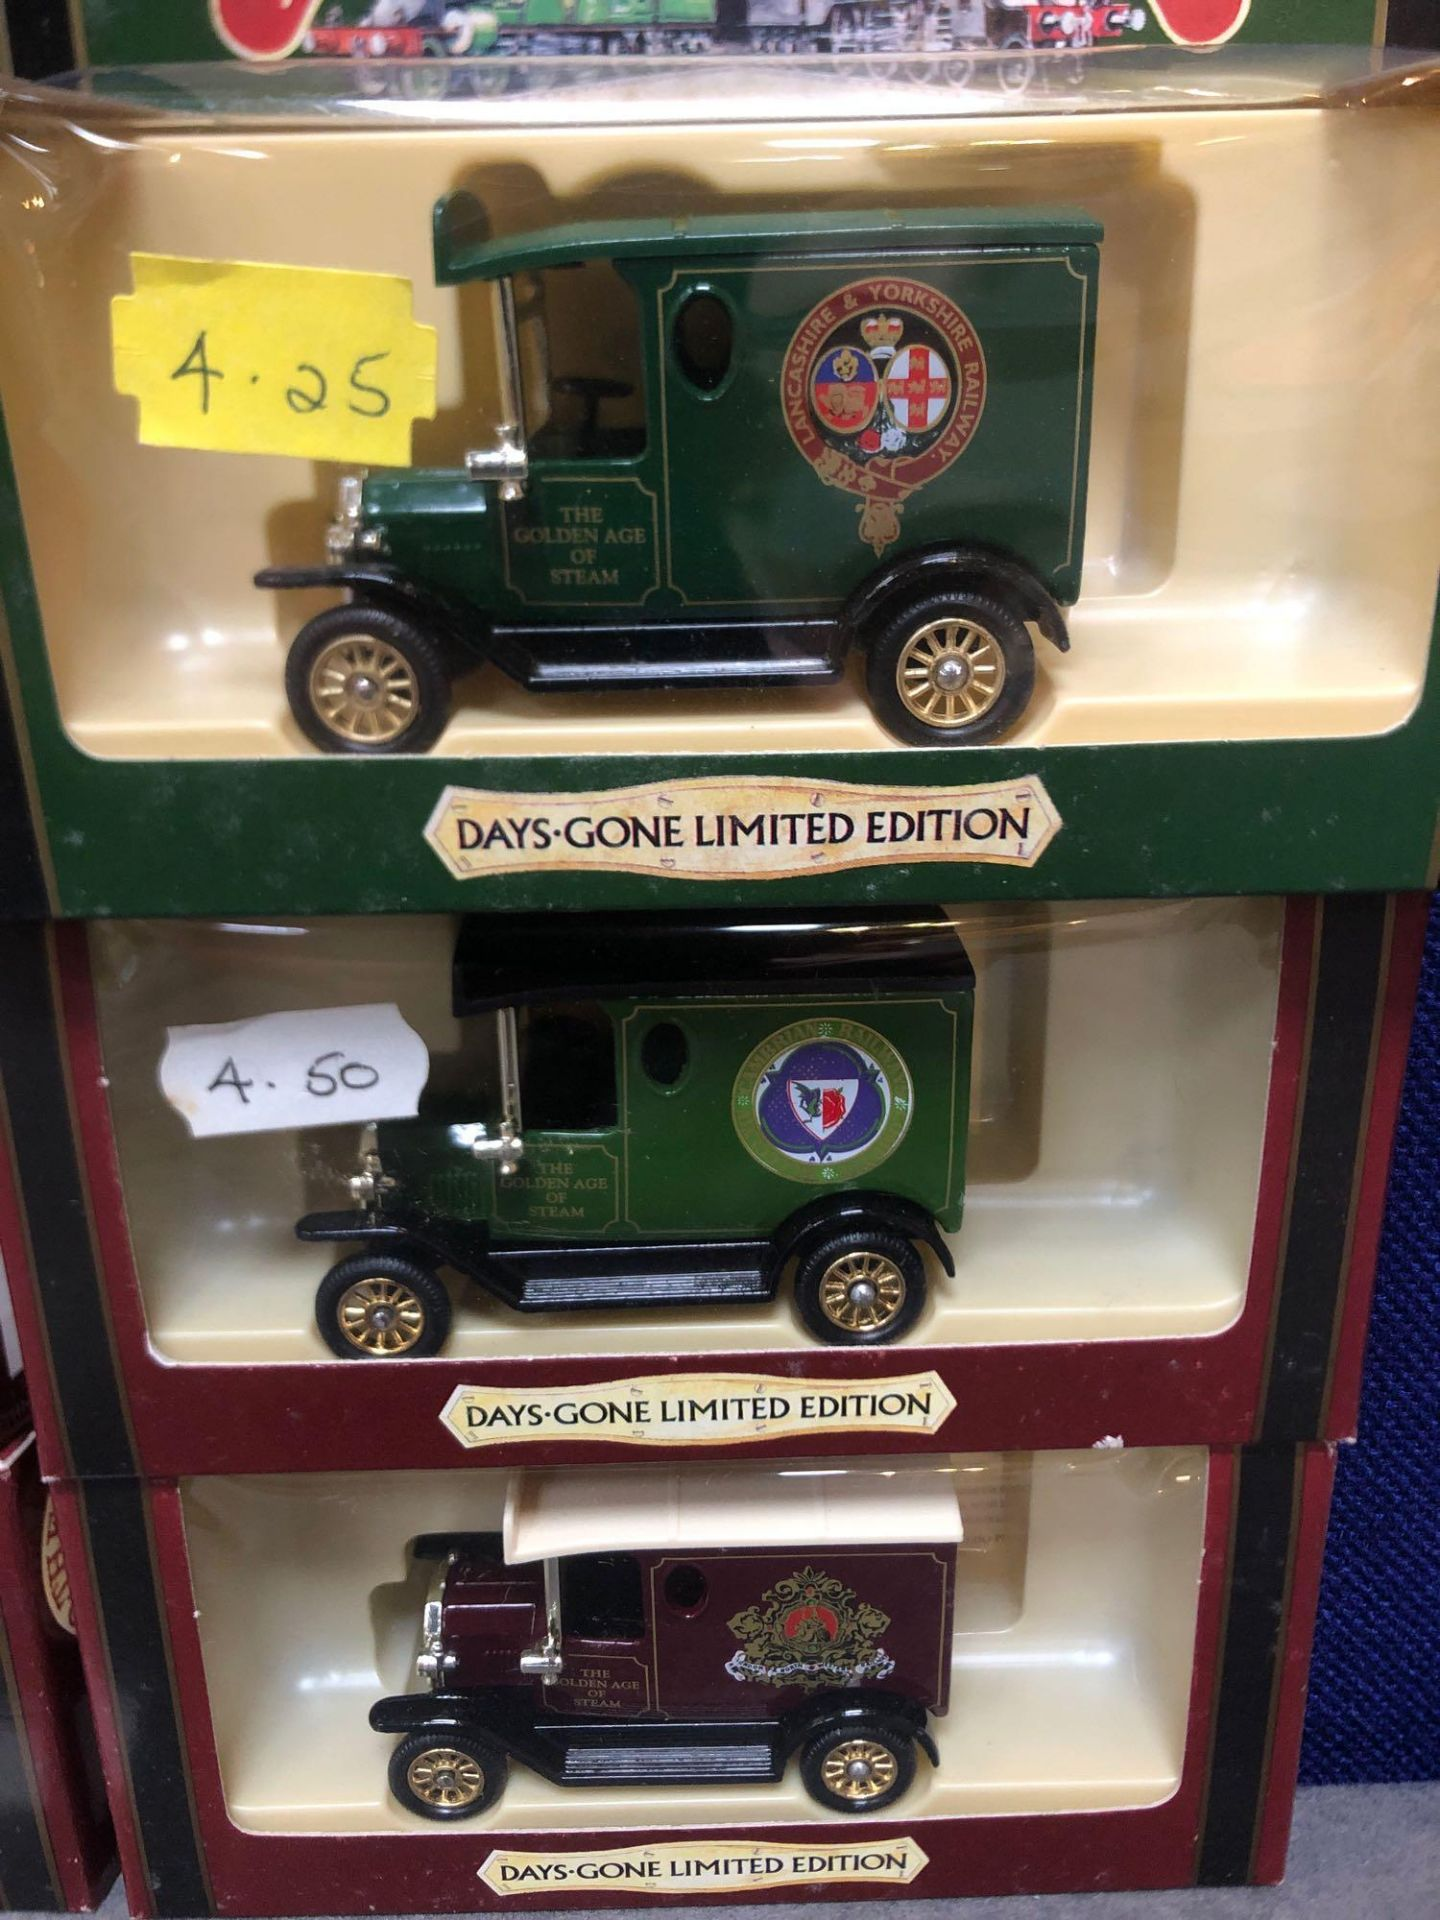 10x Diecast The Days Gone Limited Edition The Golden Age Of Steam Vehicles In Boxes - Image 4 of 4